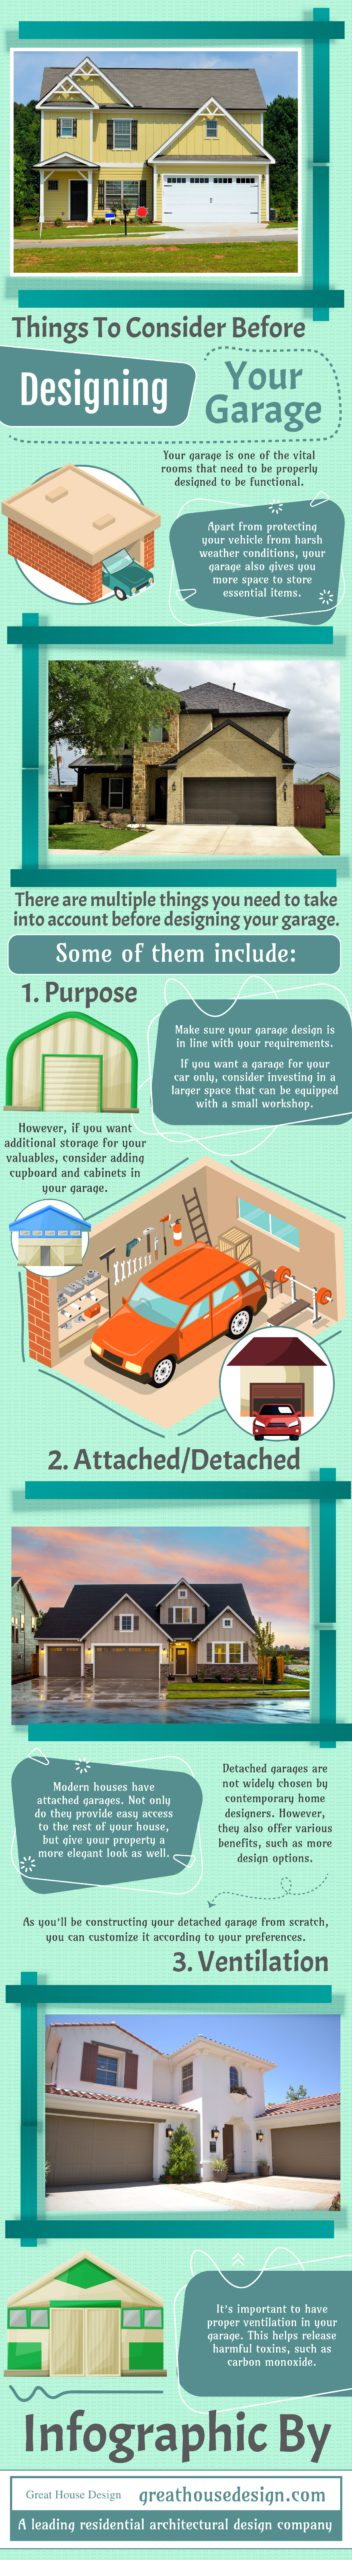 how to design your garage